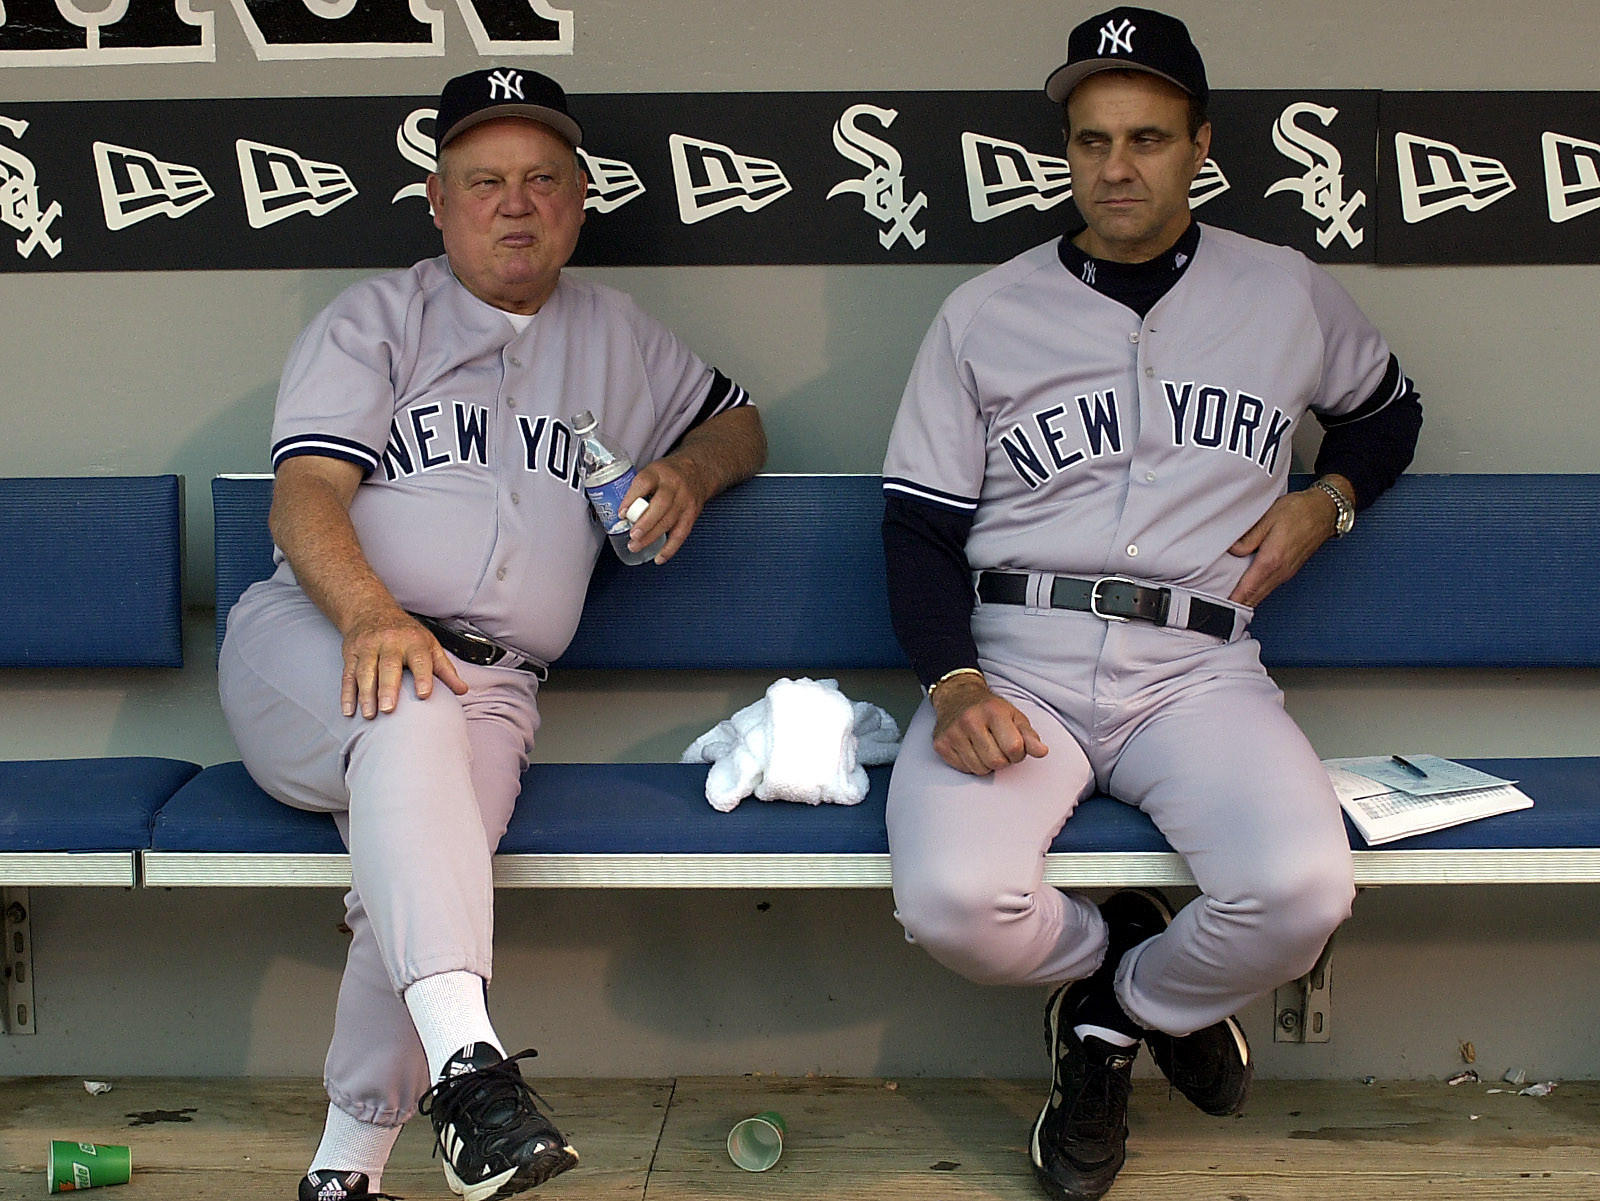 Yankees coach Don Zimmer with manager Joe Torre sit in the dugout before game against the White Sox in 2000.